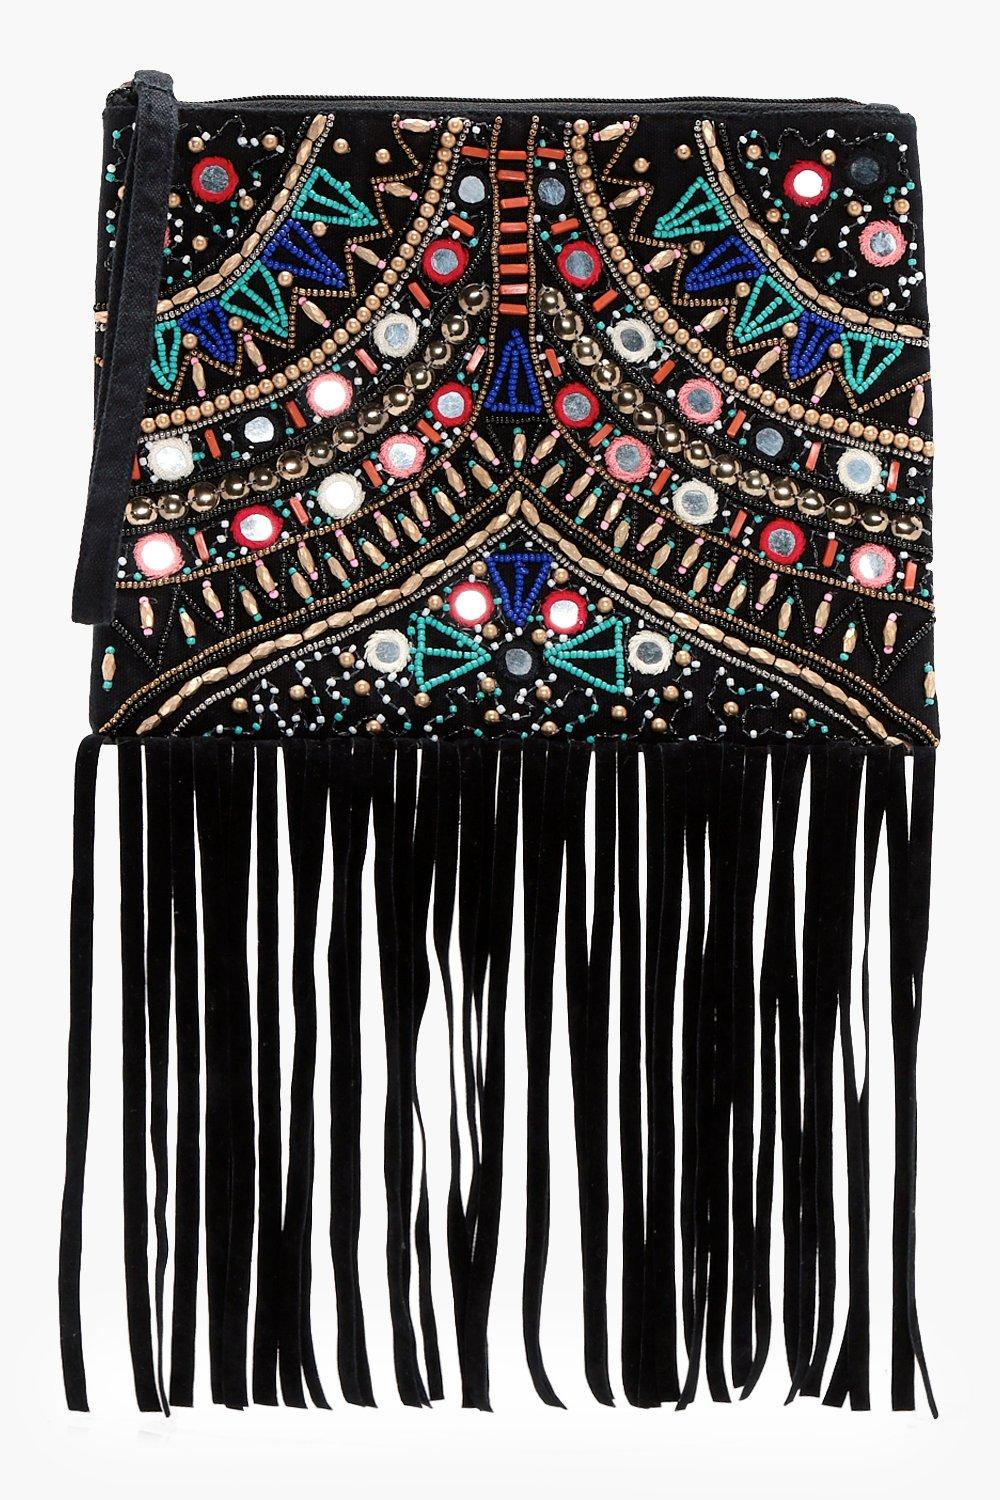 Embellished Fringed Cross Body Bag - black - Sophi